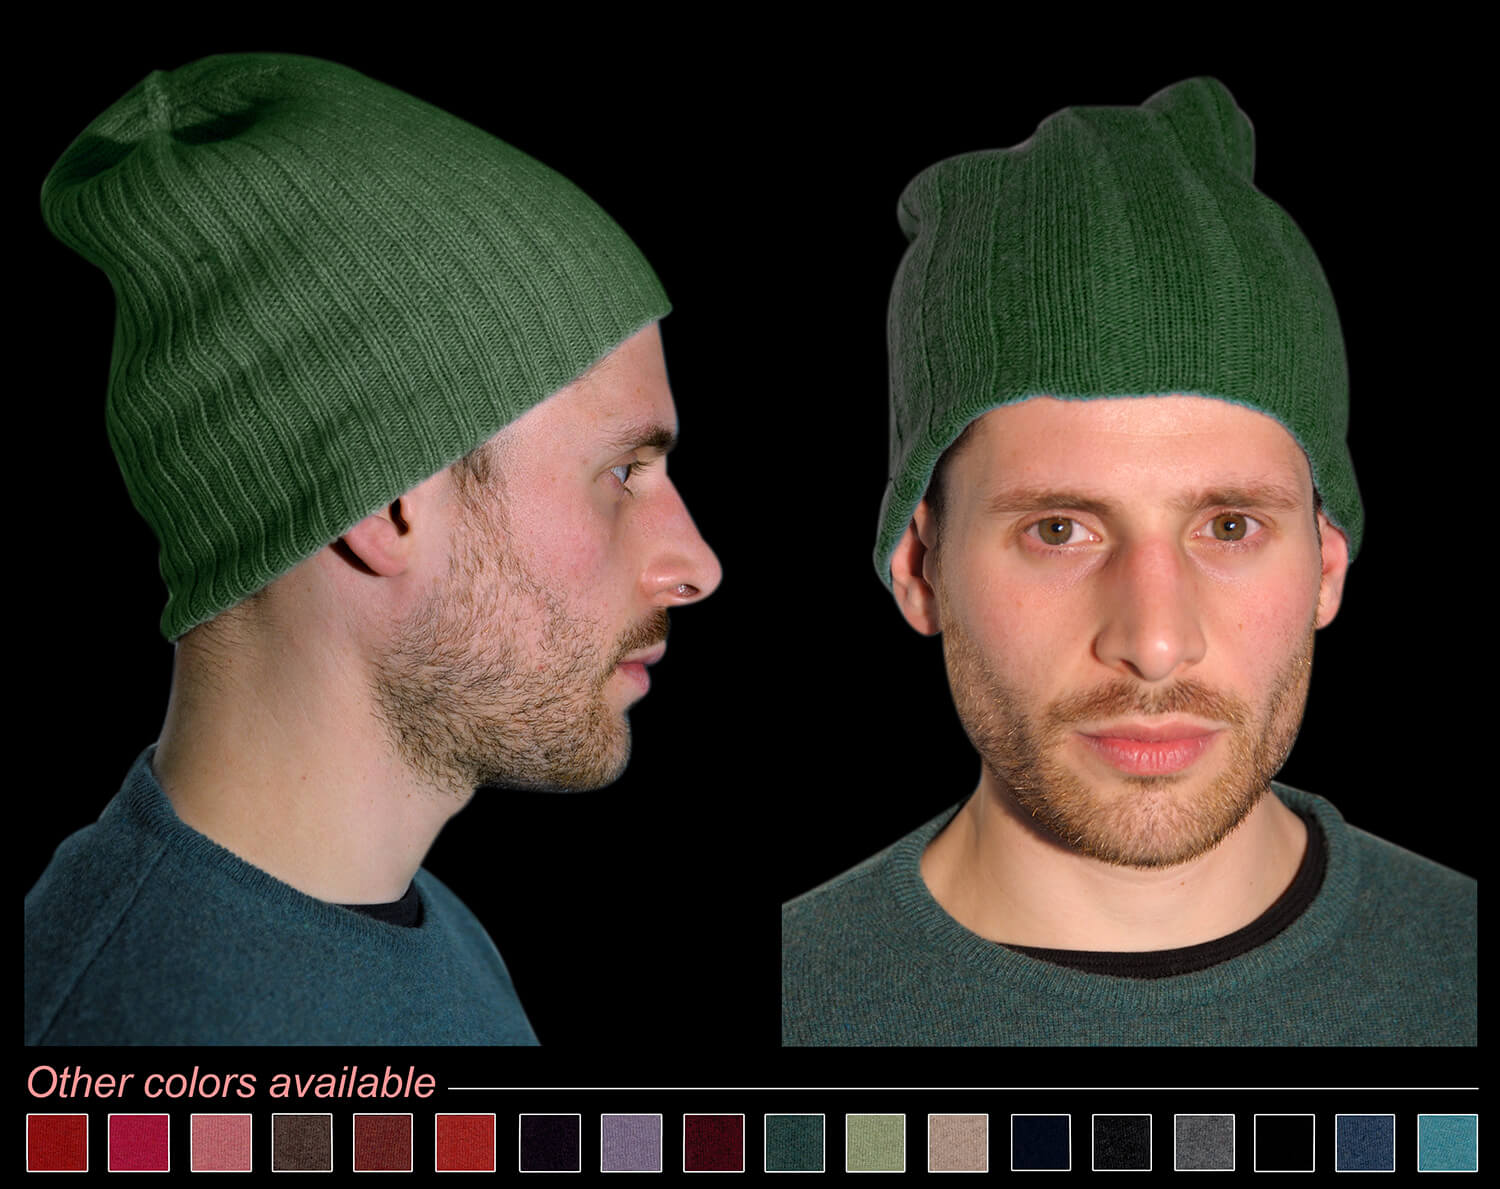 Man hat color green code 119 and 298